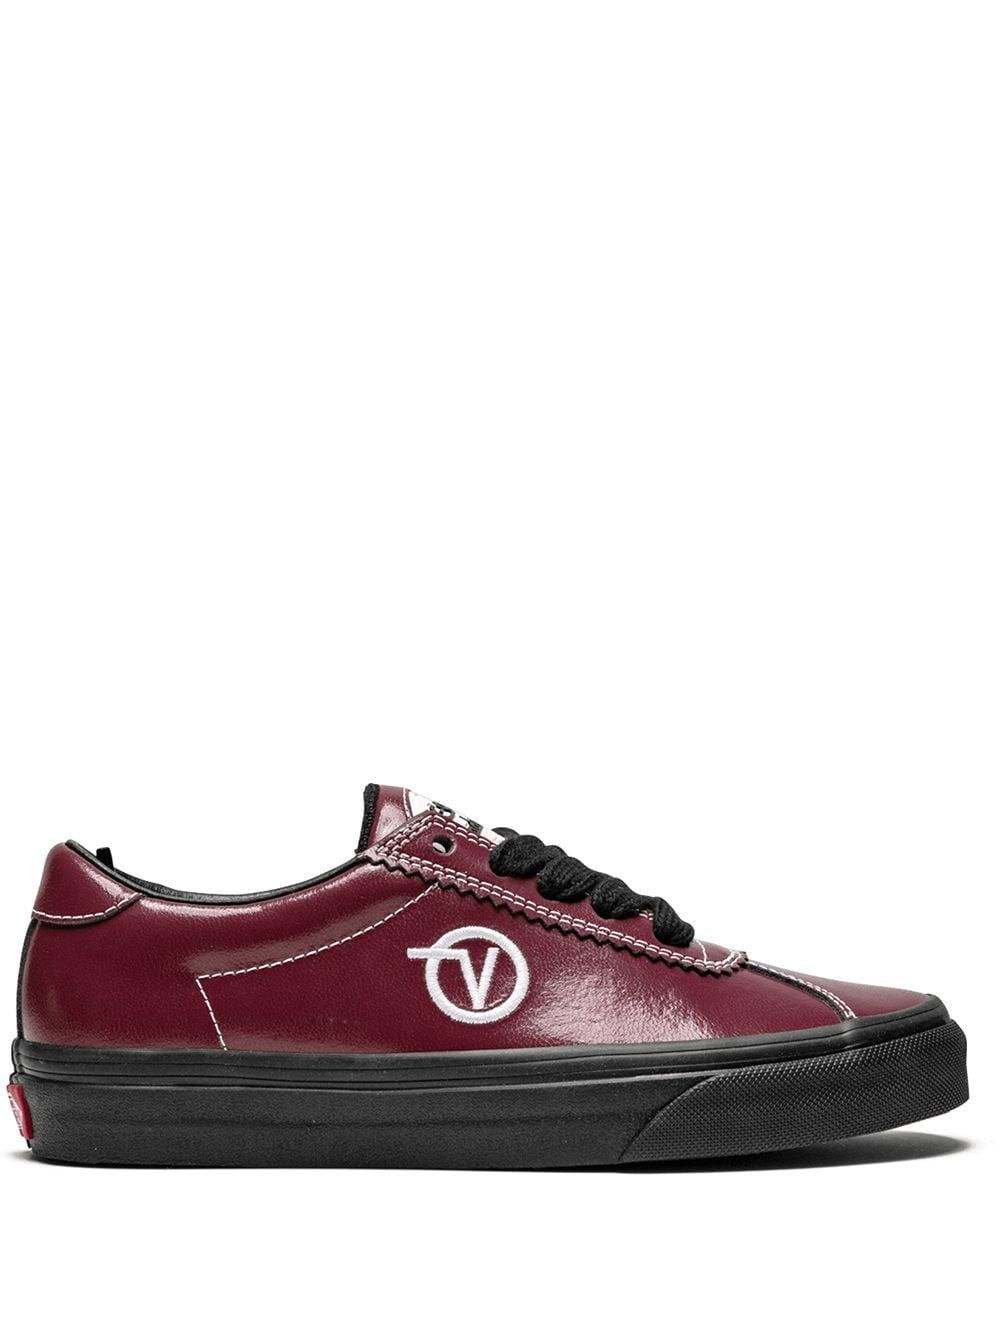 Vans Wally Vulc sneakers - Red von Vans